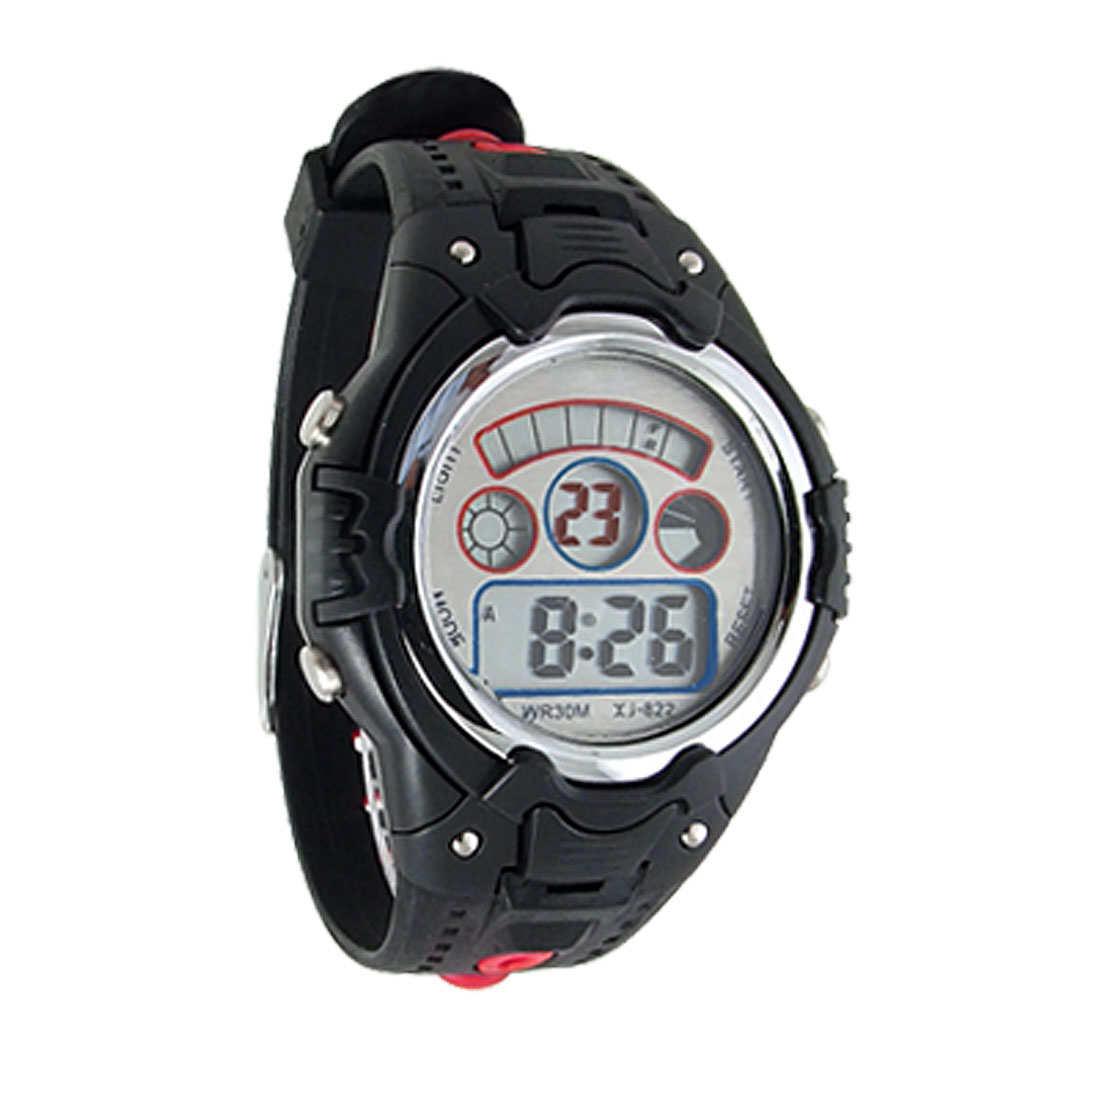 Black Red Soft Watchband Round Dial Alarm Sports Stopwatch Watch